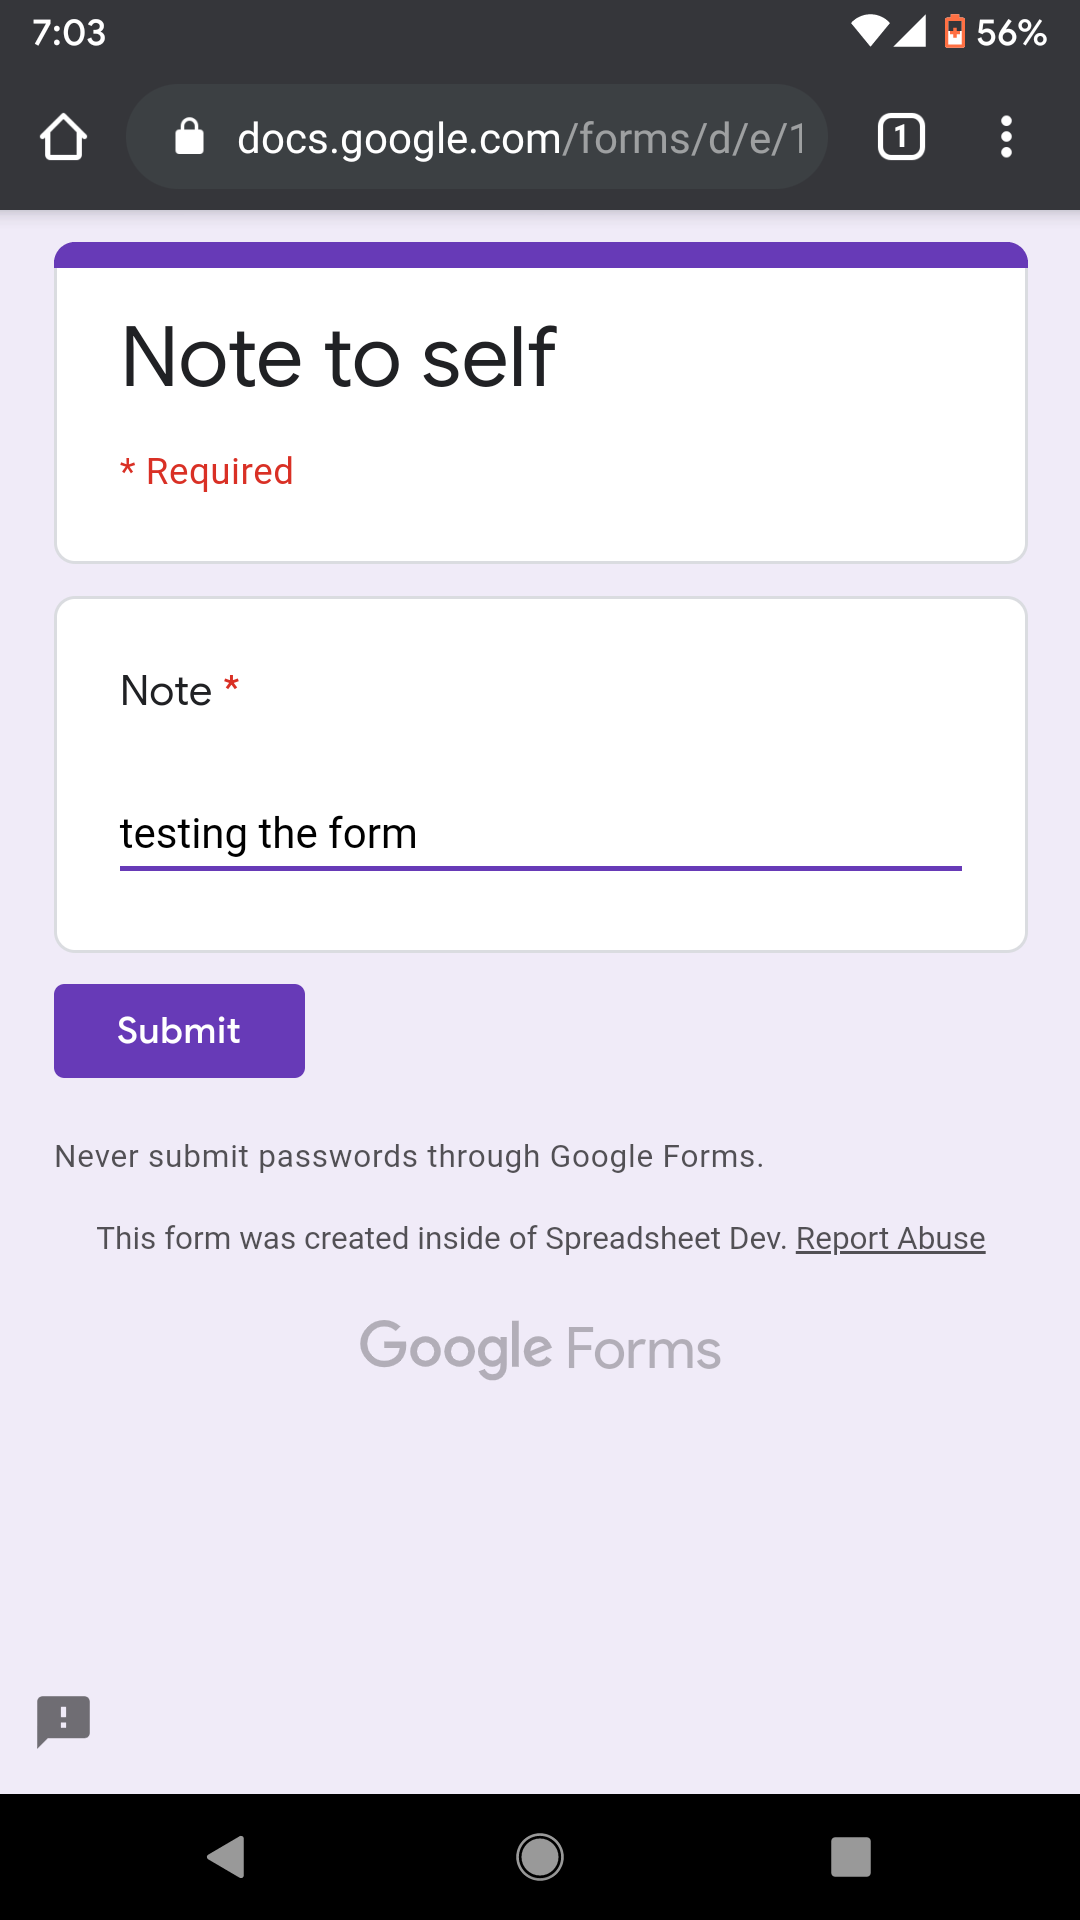 Screenshot of a Google Form opened in the Google Chrome browser on an Android hone.